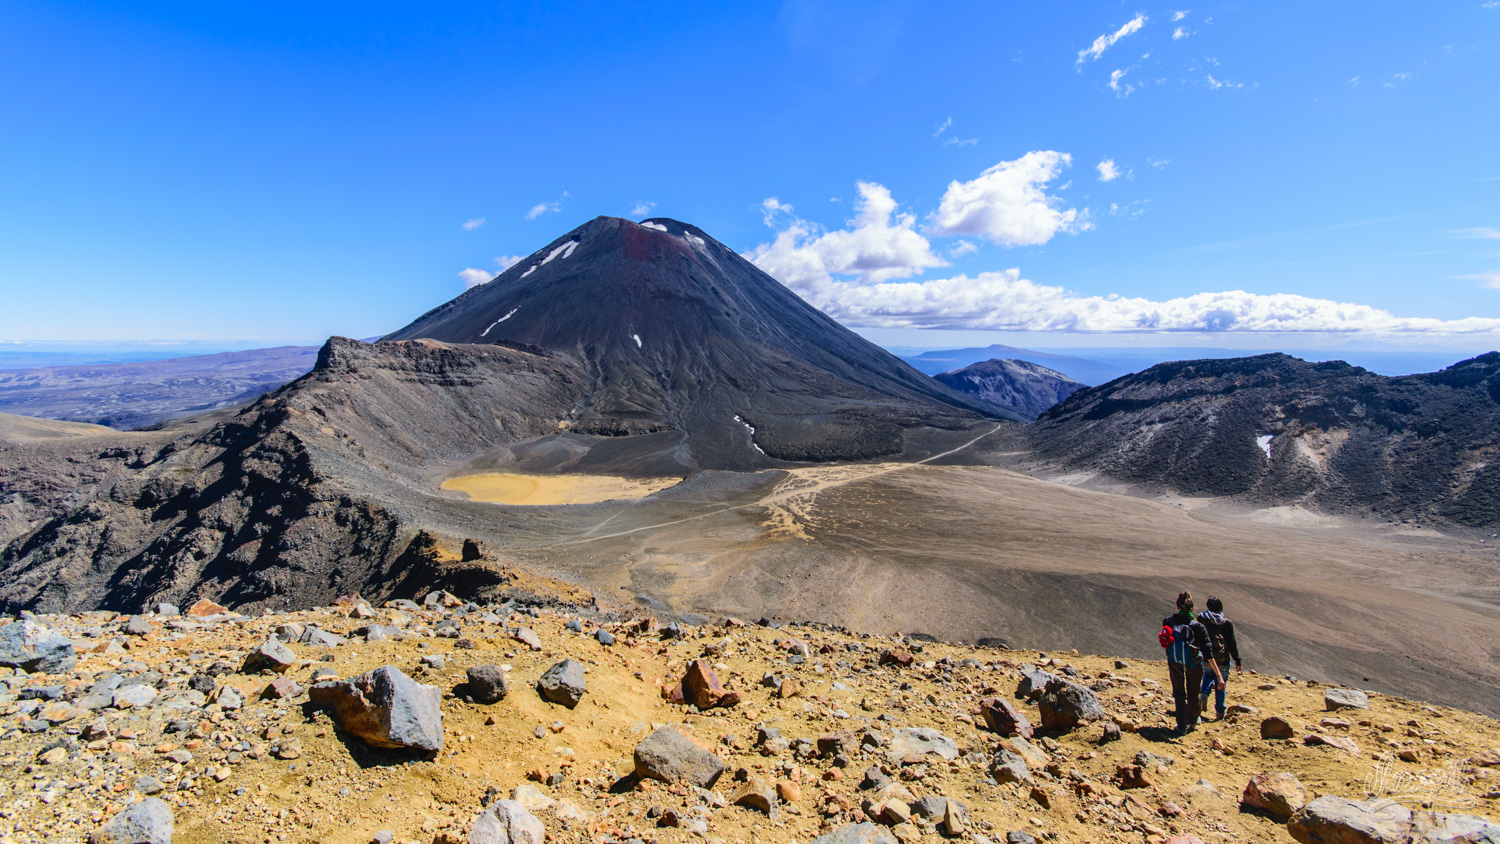 On Top Of Mt Doom